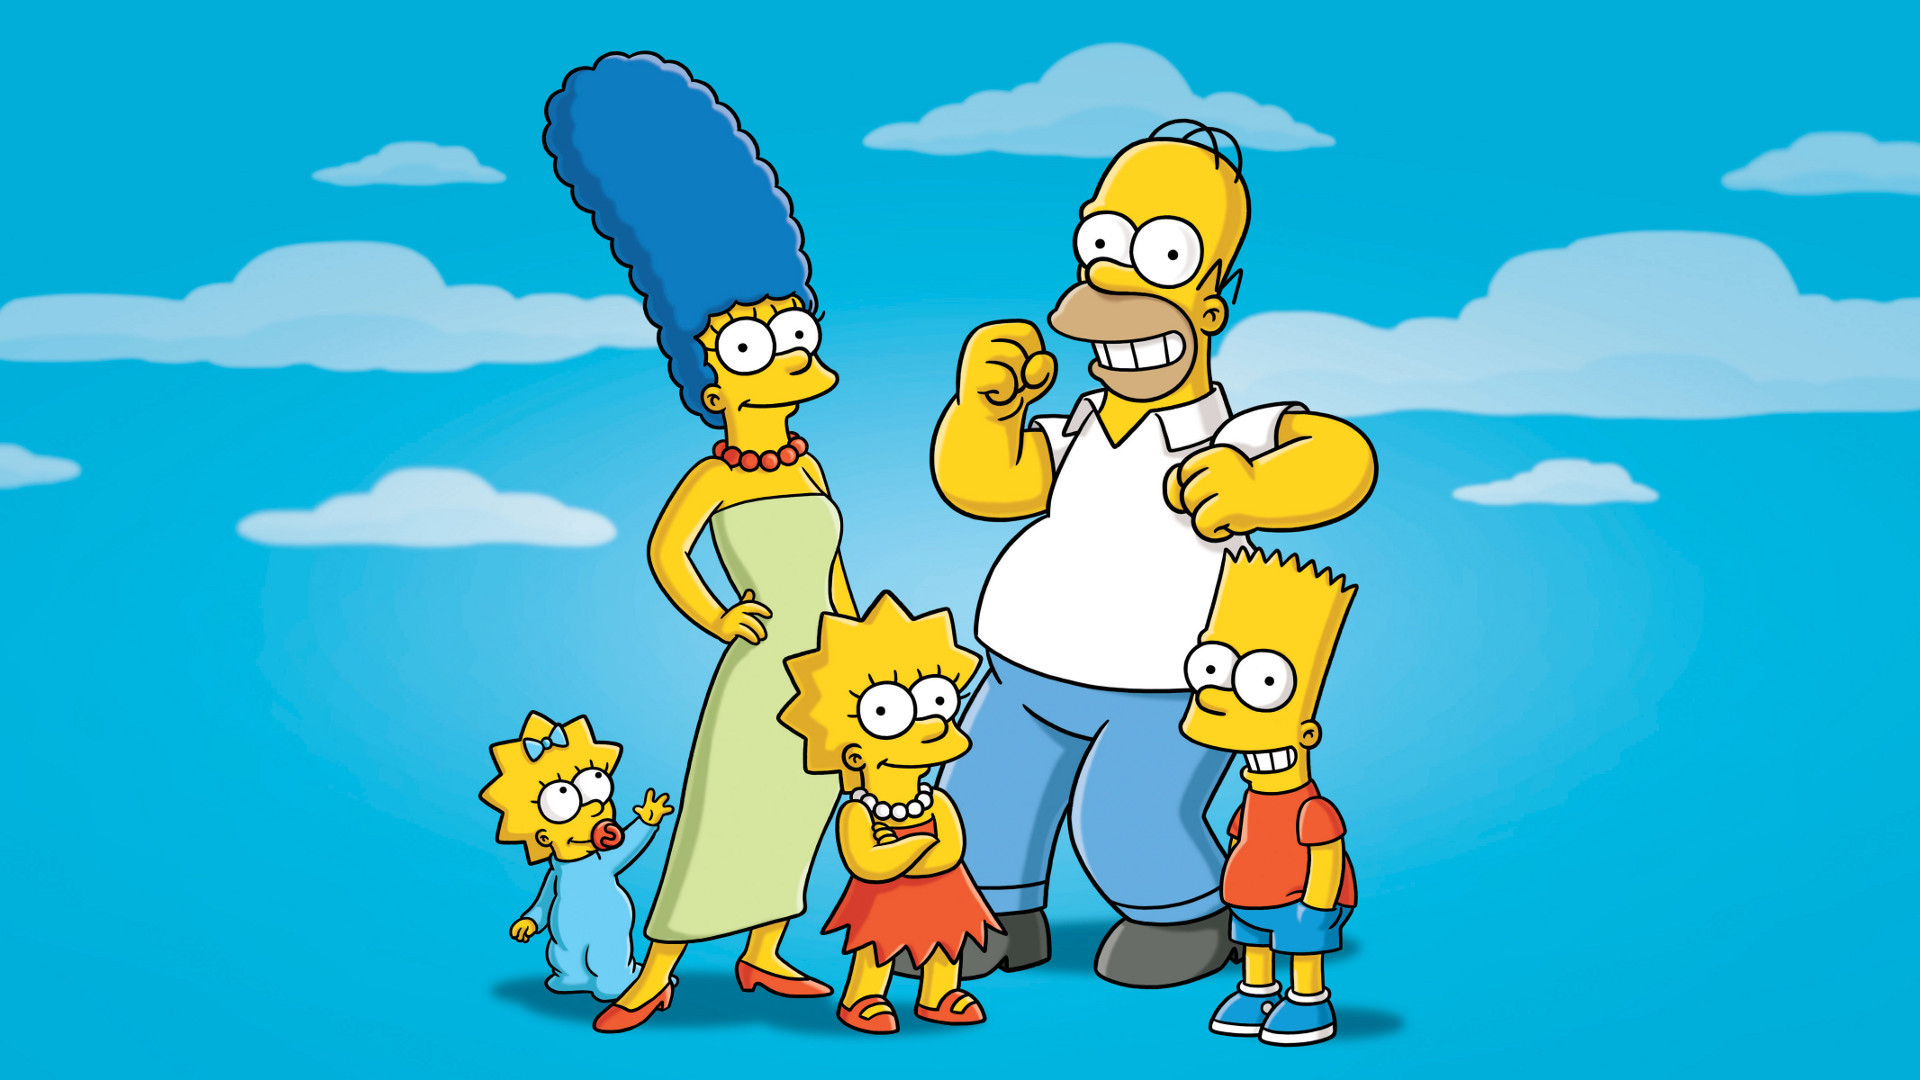 The Simpsons breaks another TV record with two-season renewal